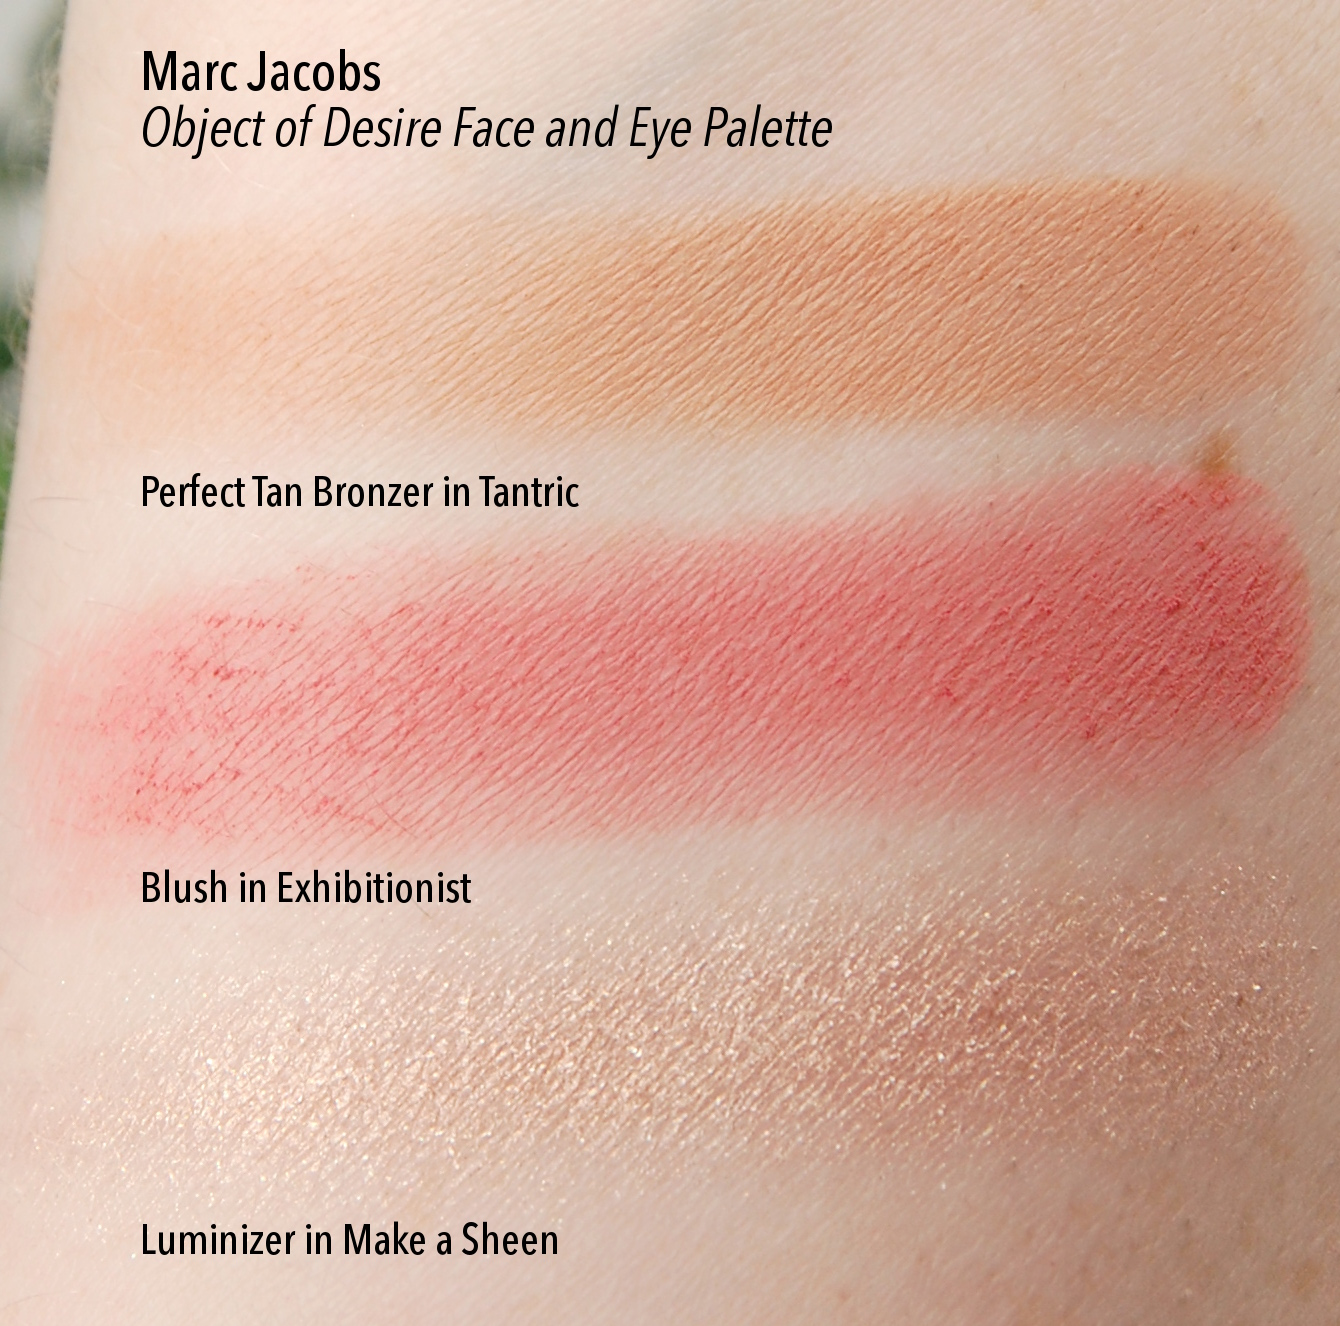 Marc Jacobs Object of Desire Face and Eye Palette swatches 1